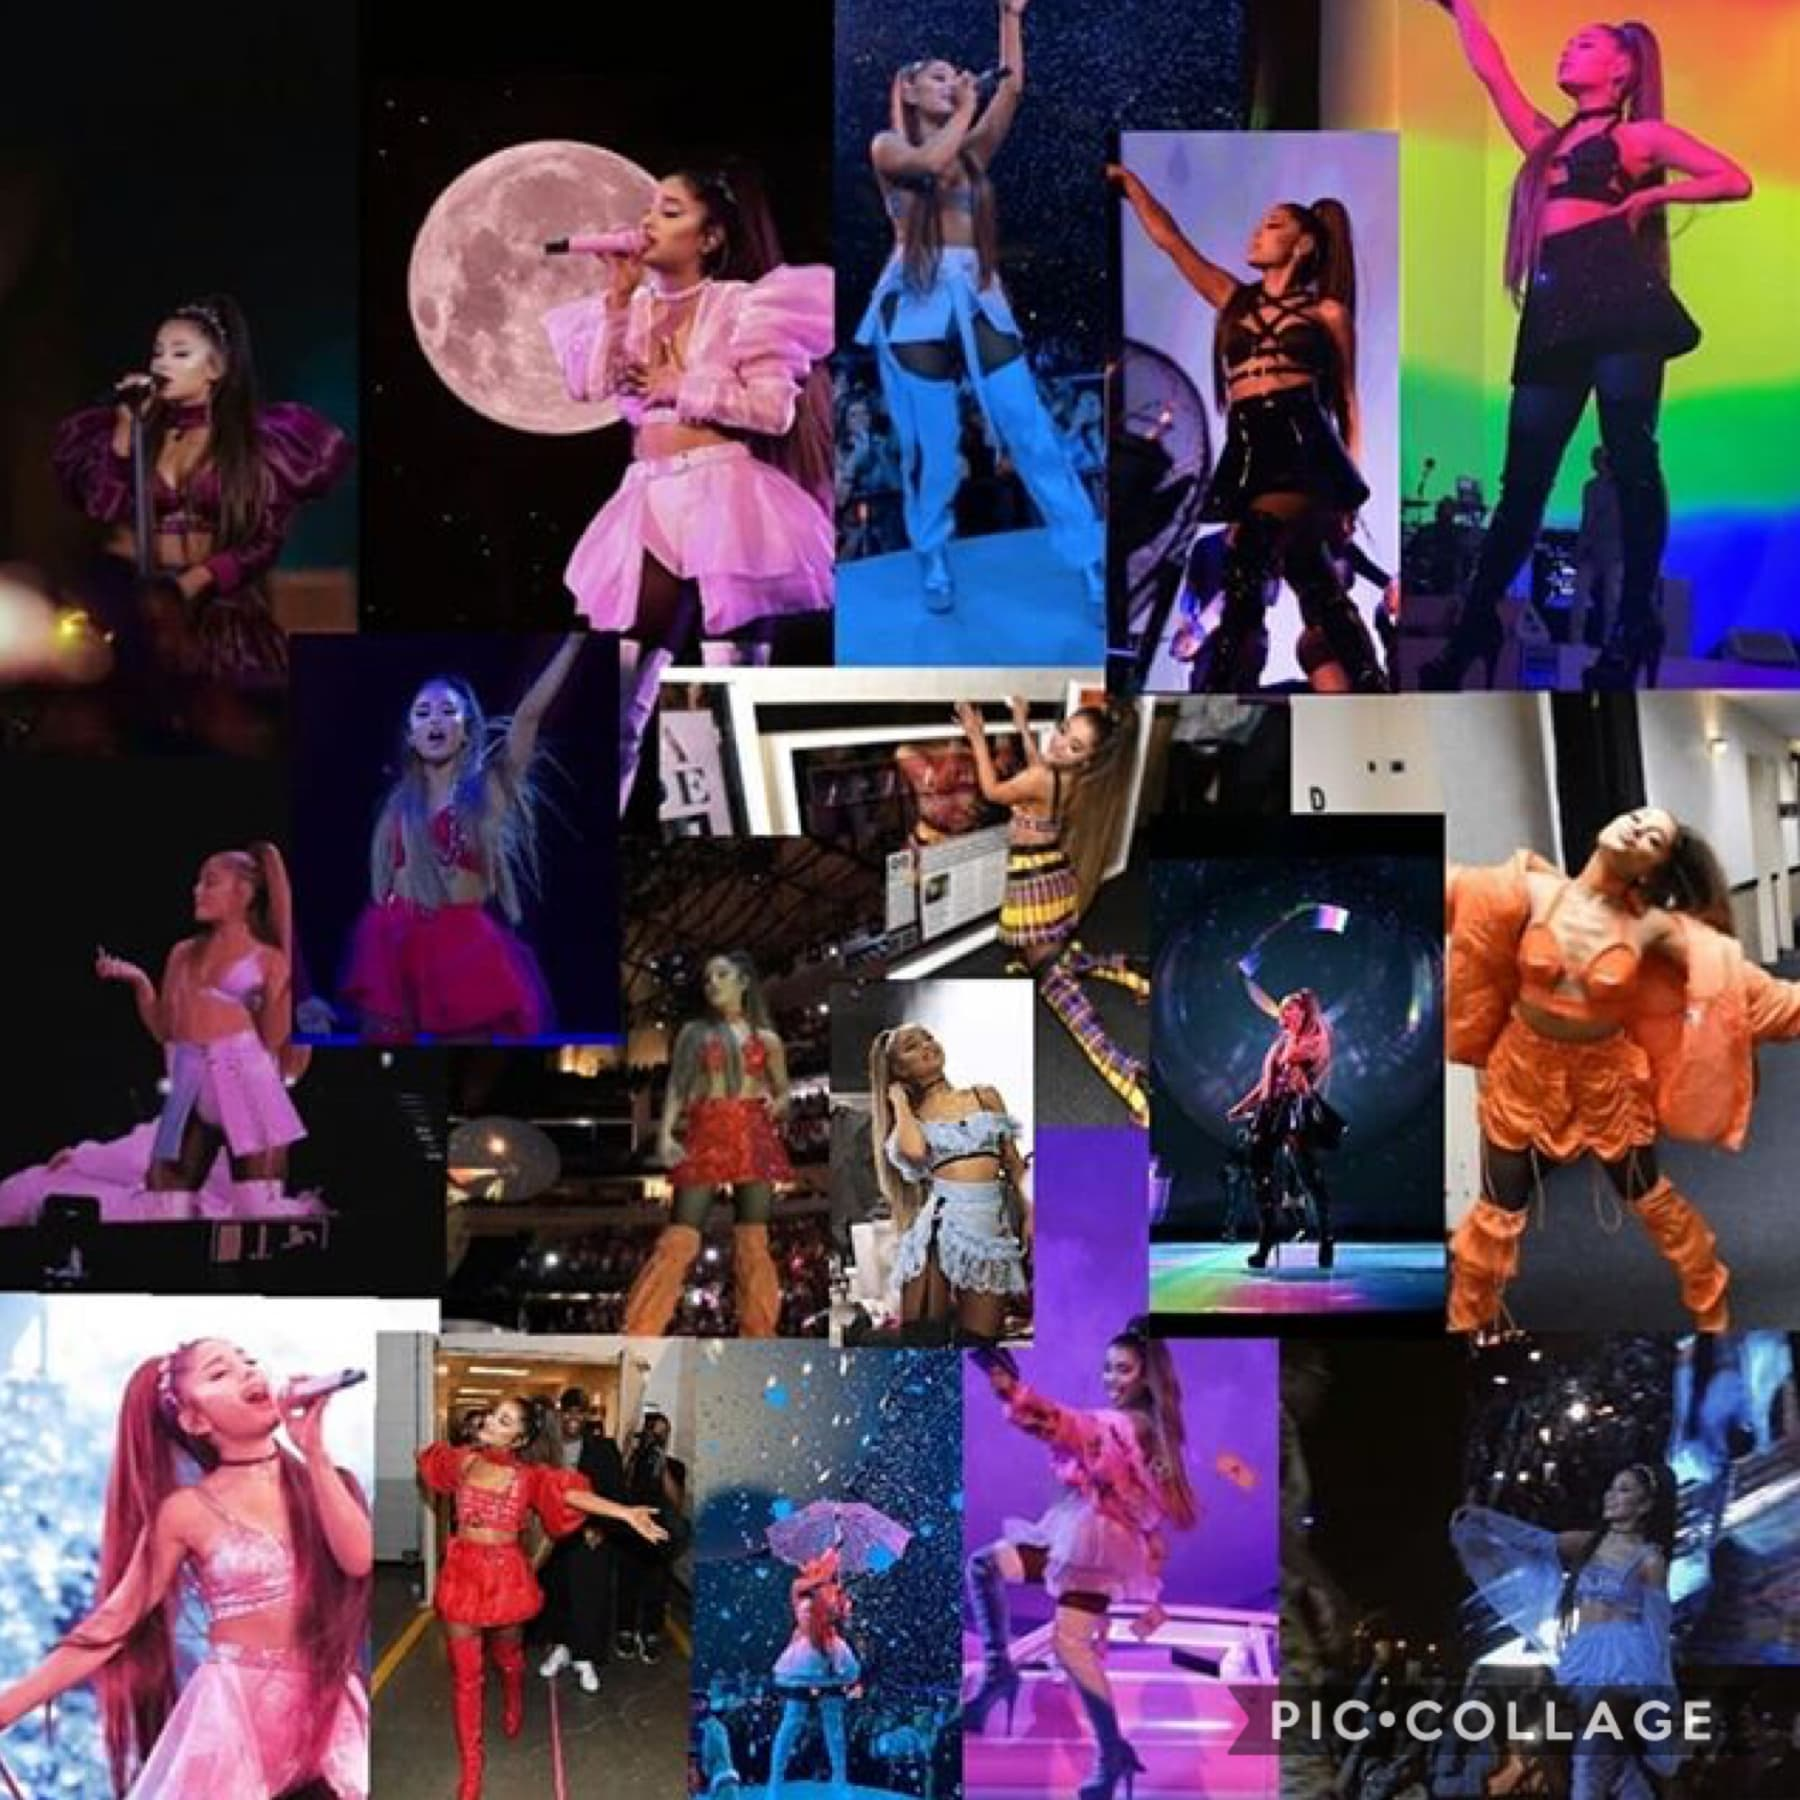 All of Ariana sweetener world tour outfits in one collage/edit❤️😭✨